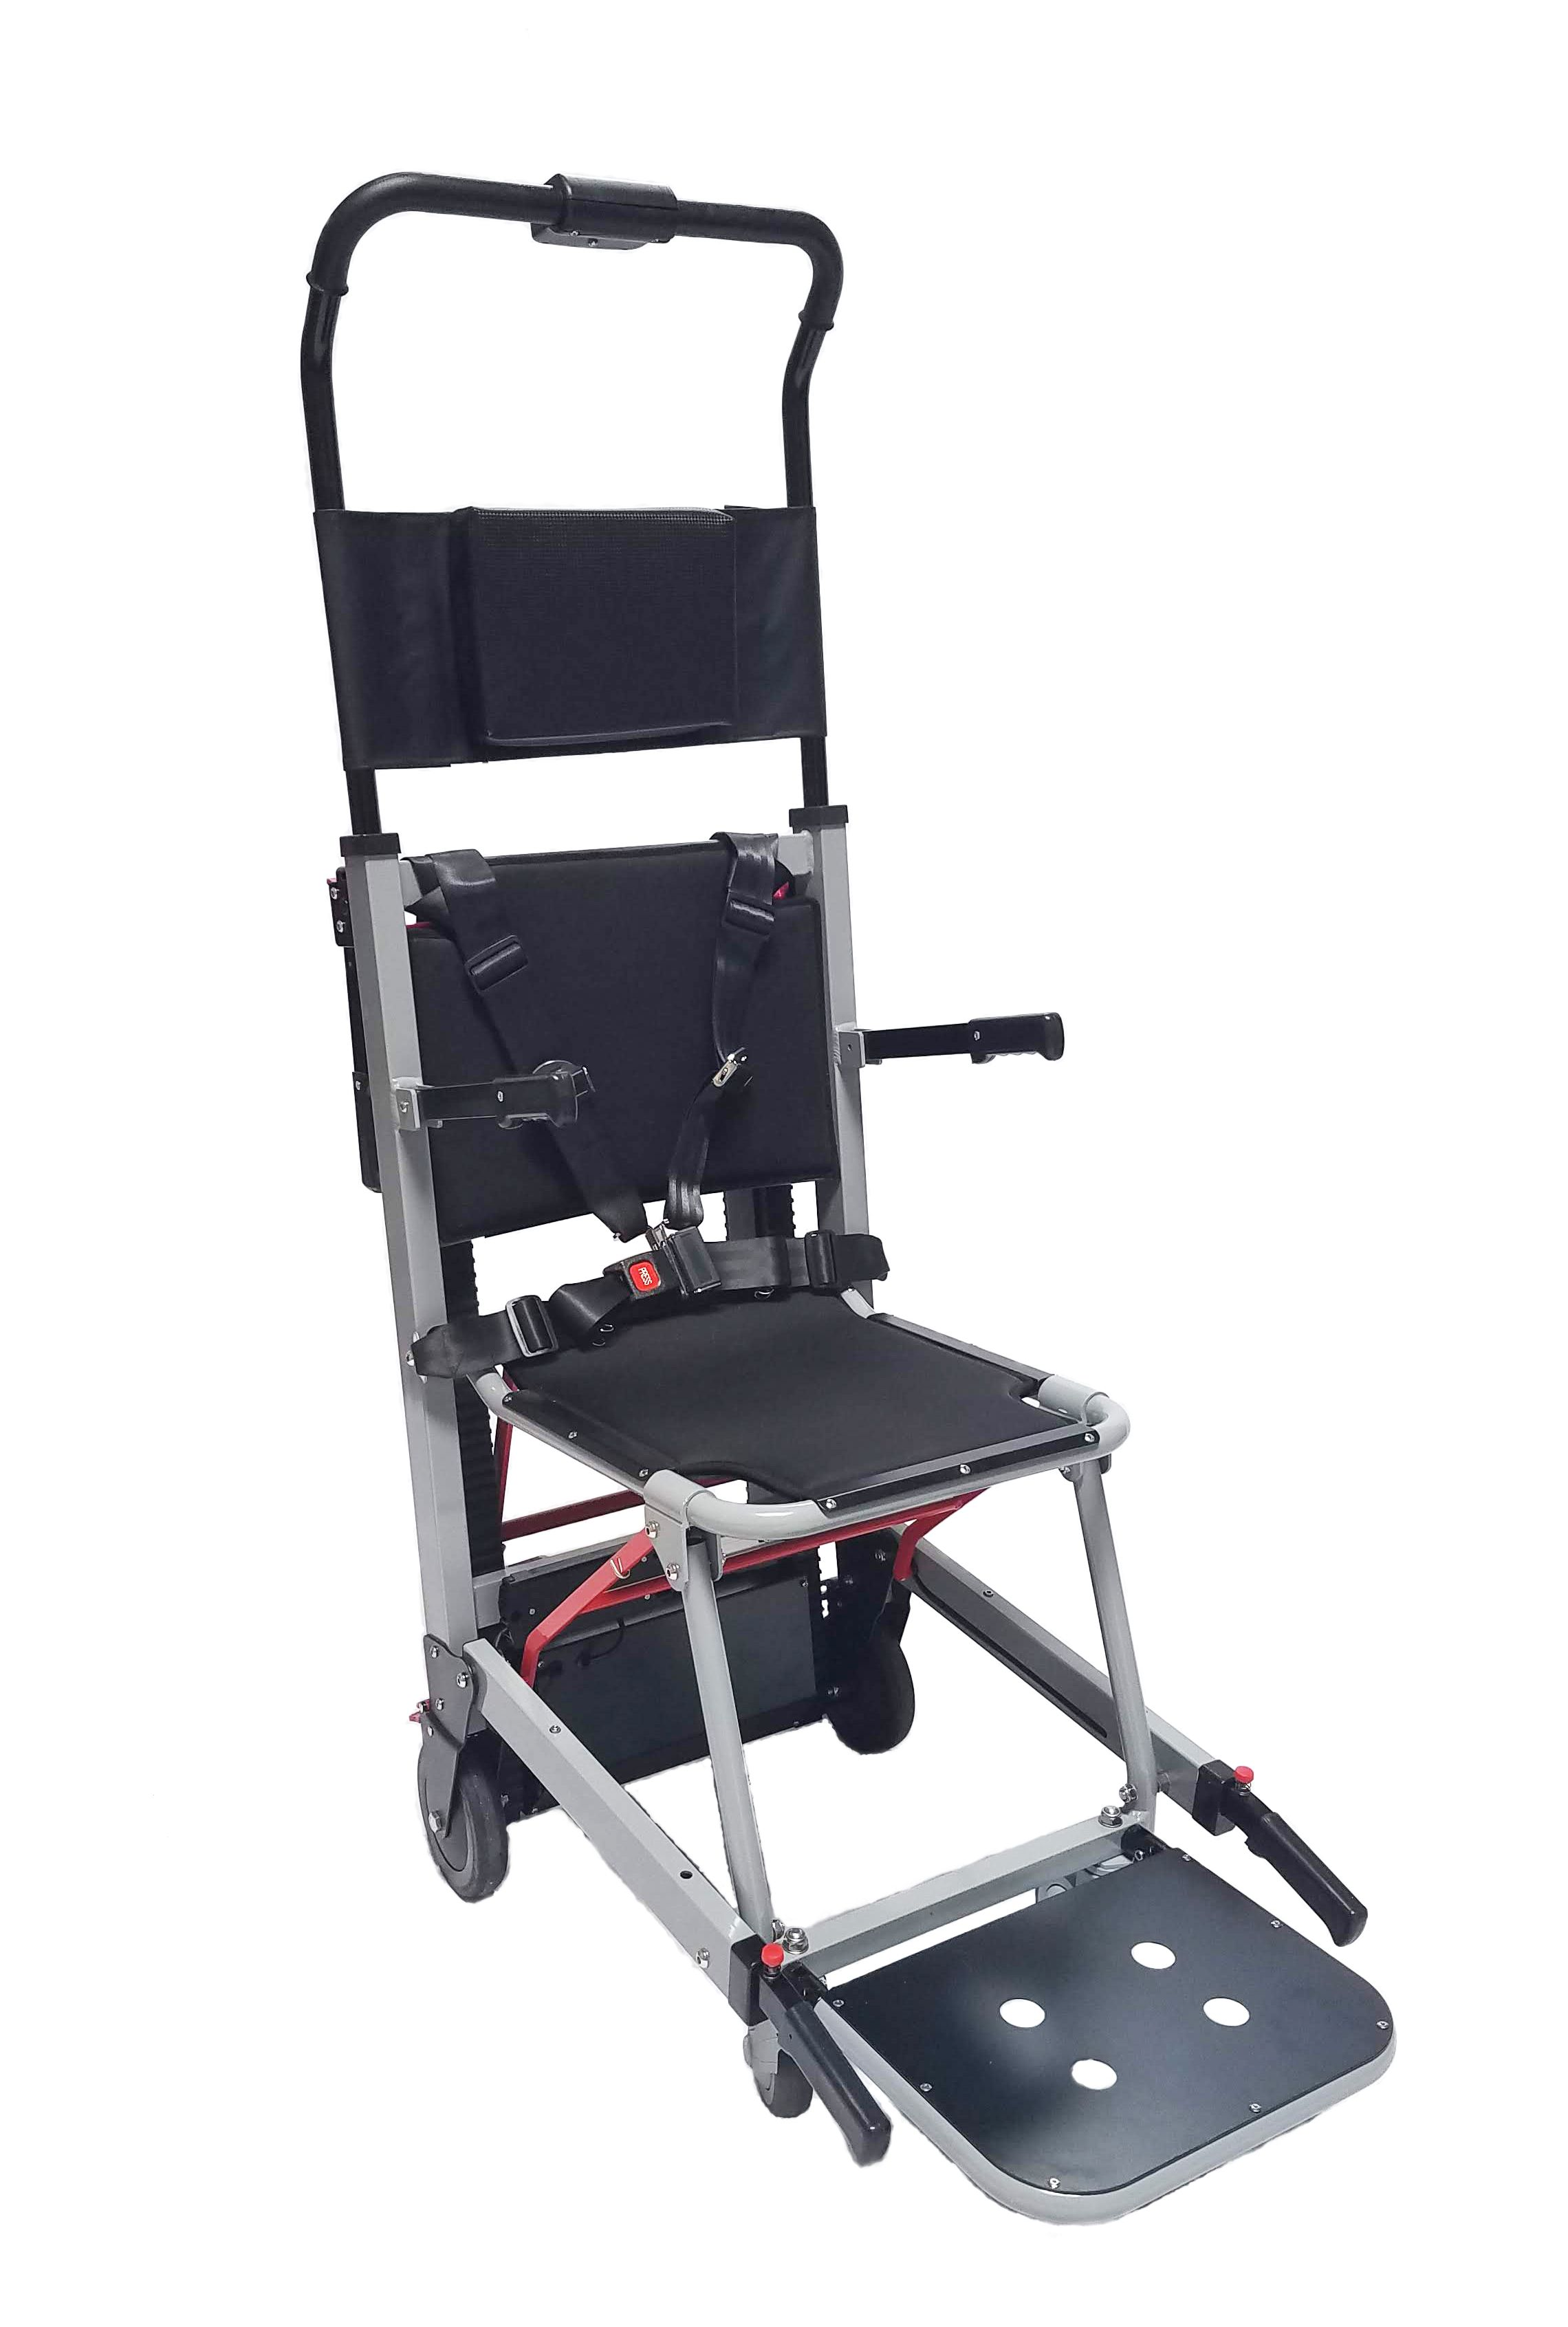 Battery Powered Stair Climb Assist Chair